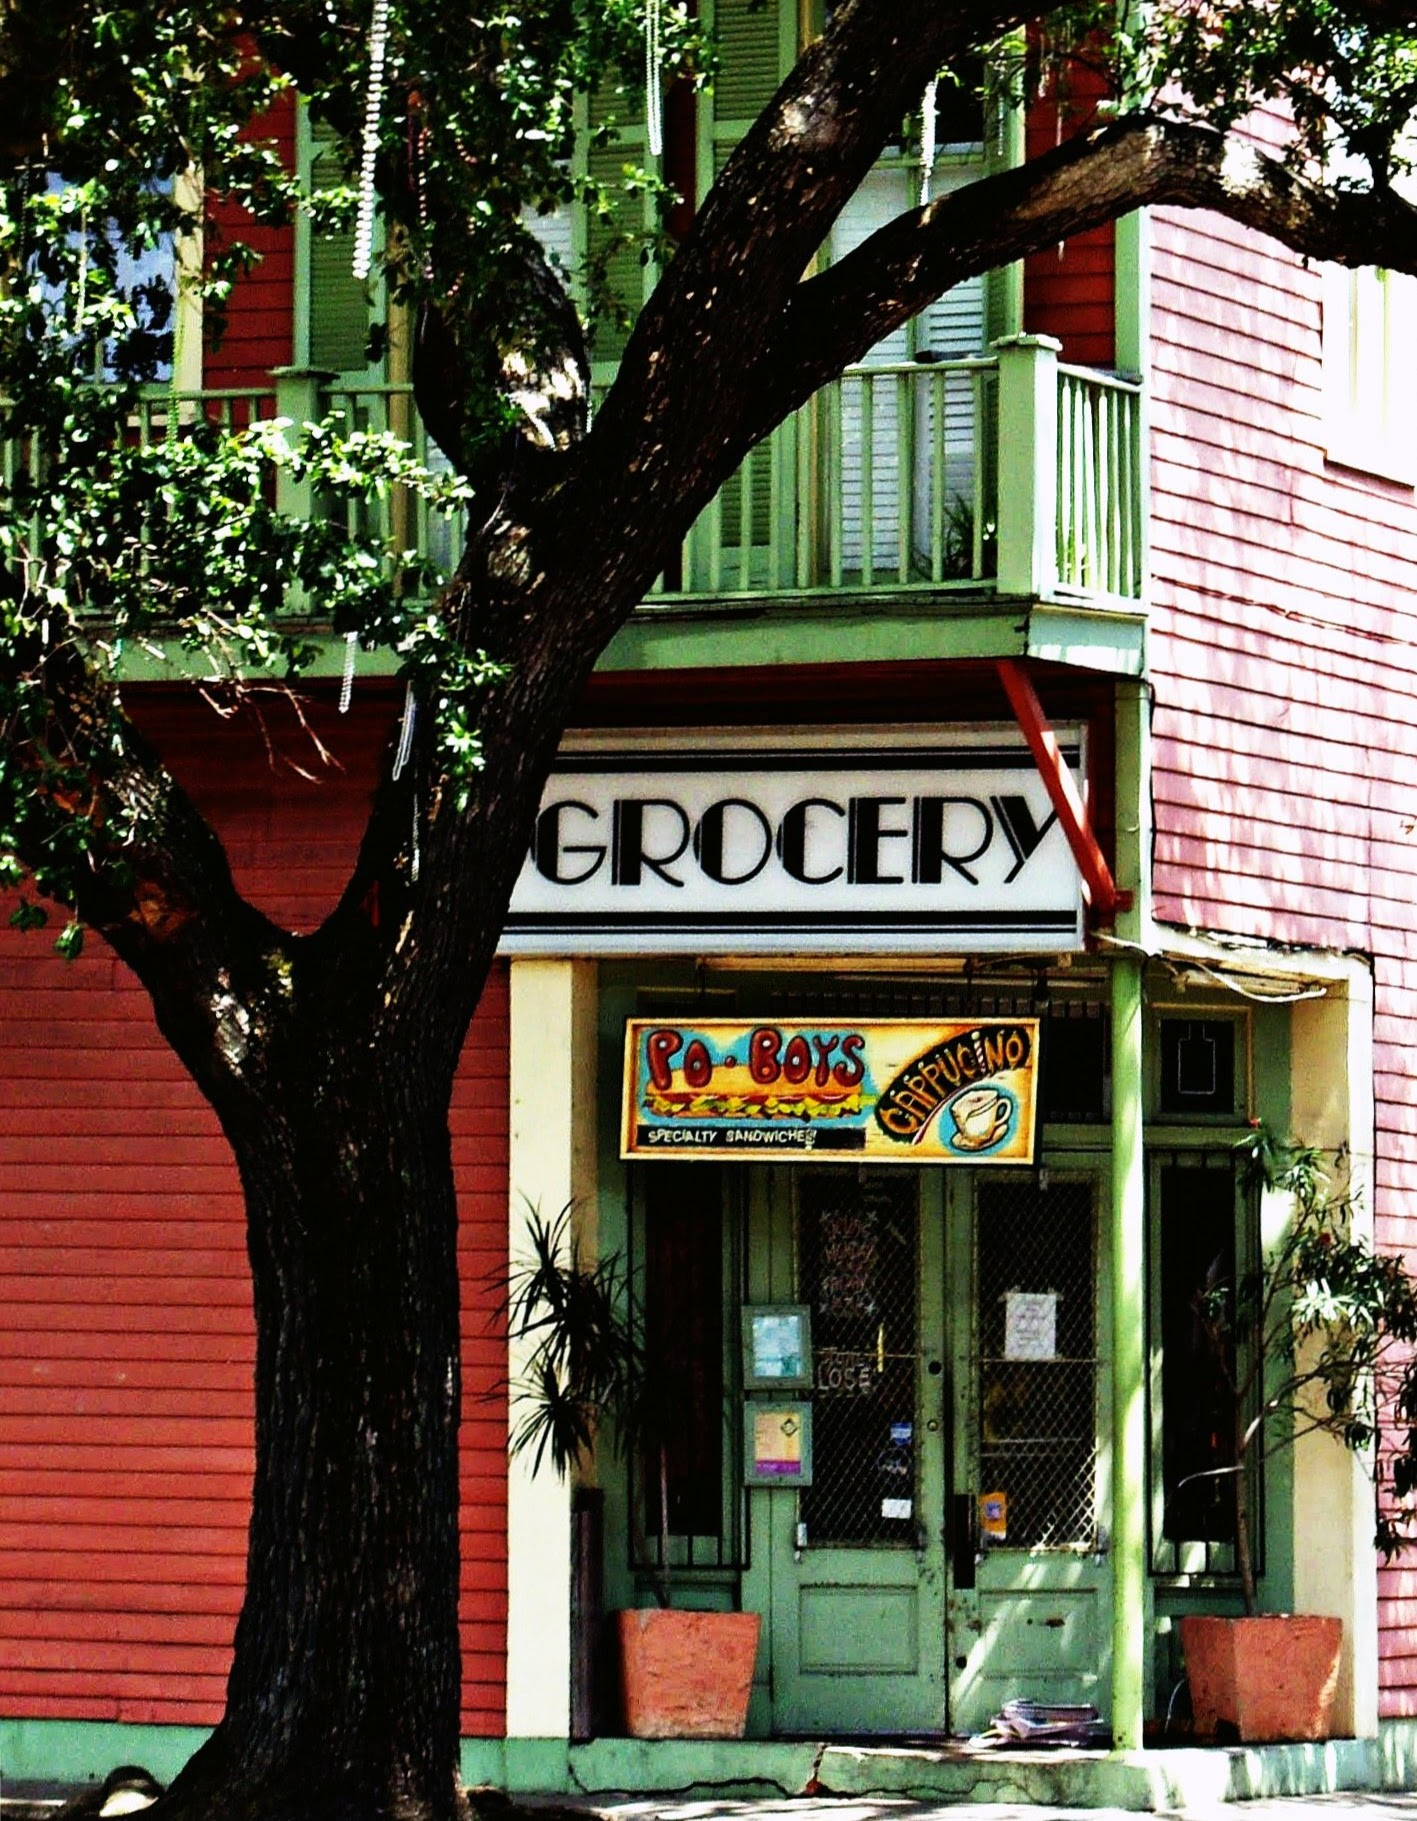 st charles grocery (1)